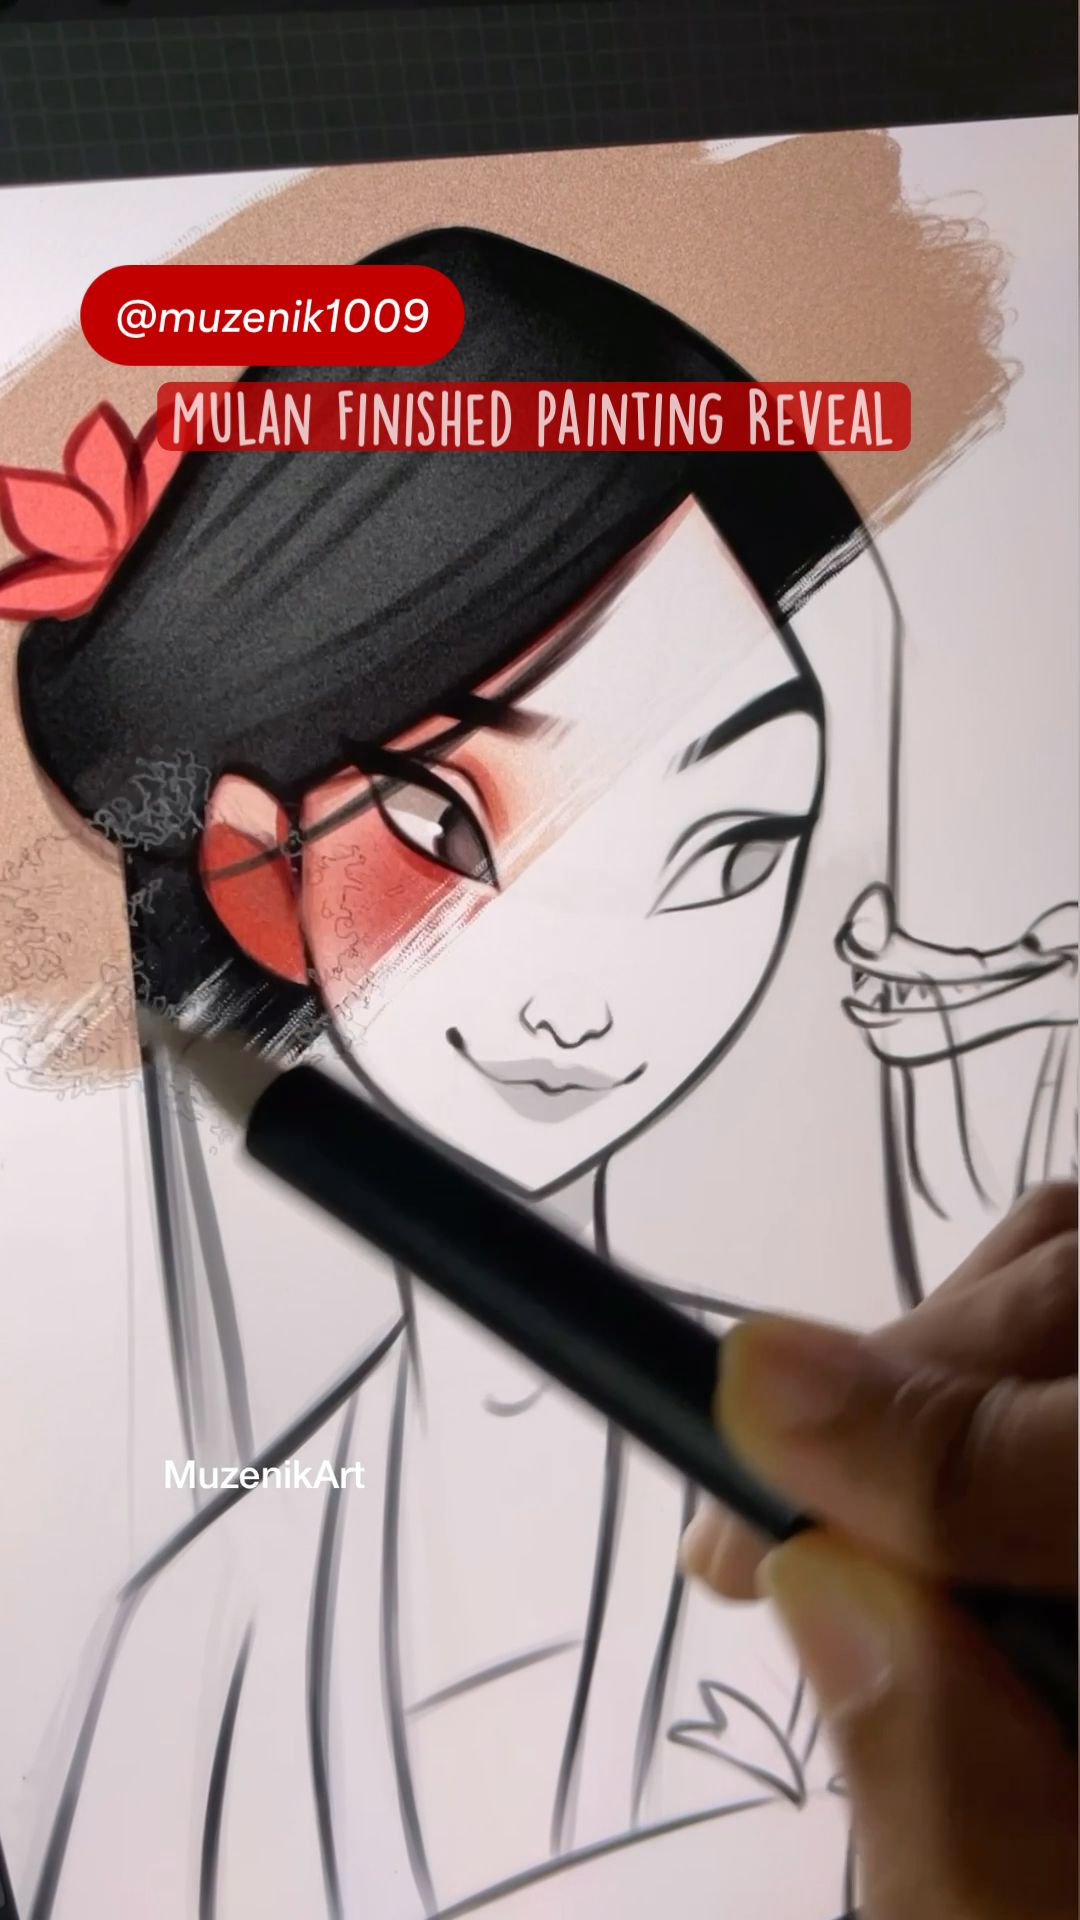 Mulan Finished Painting Reveal